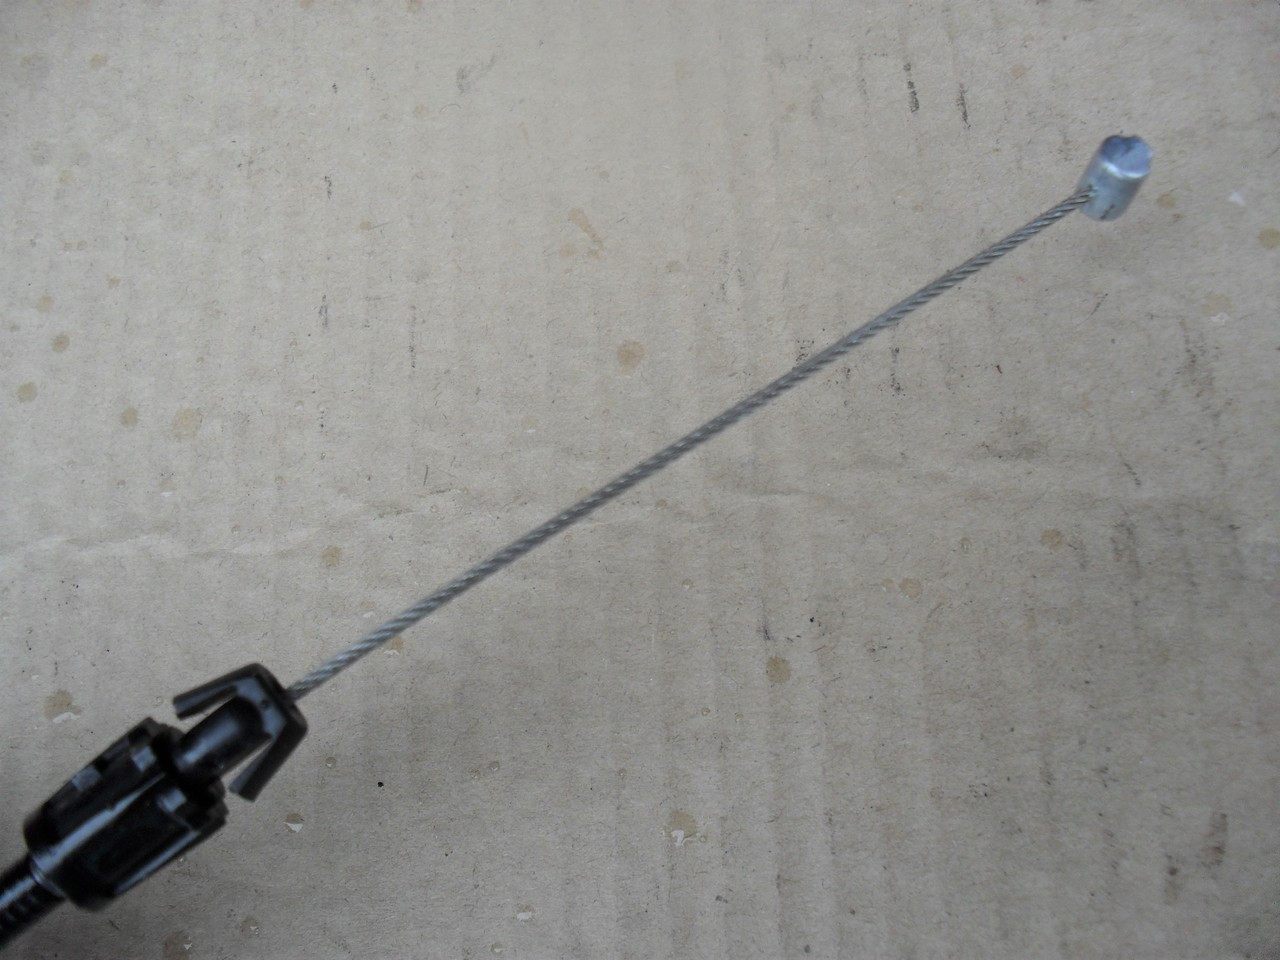 Chute Control Cable for Cub Cadet 524WE, 746-04238, 946-04238 Snowblower, snowthrower, snow blower thrower, Made In USA